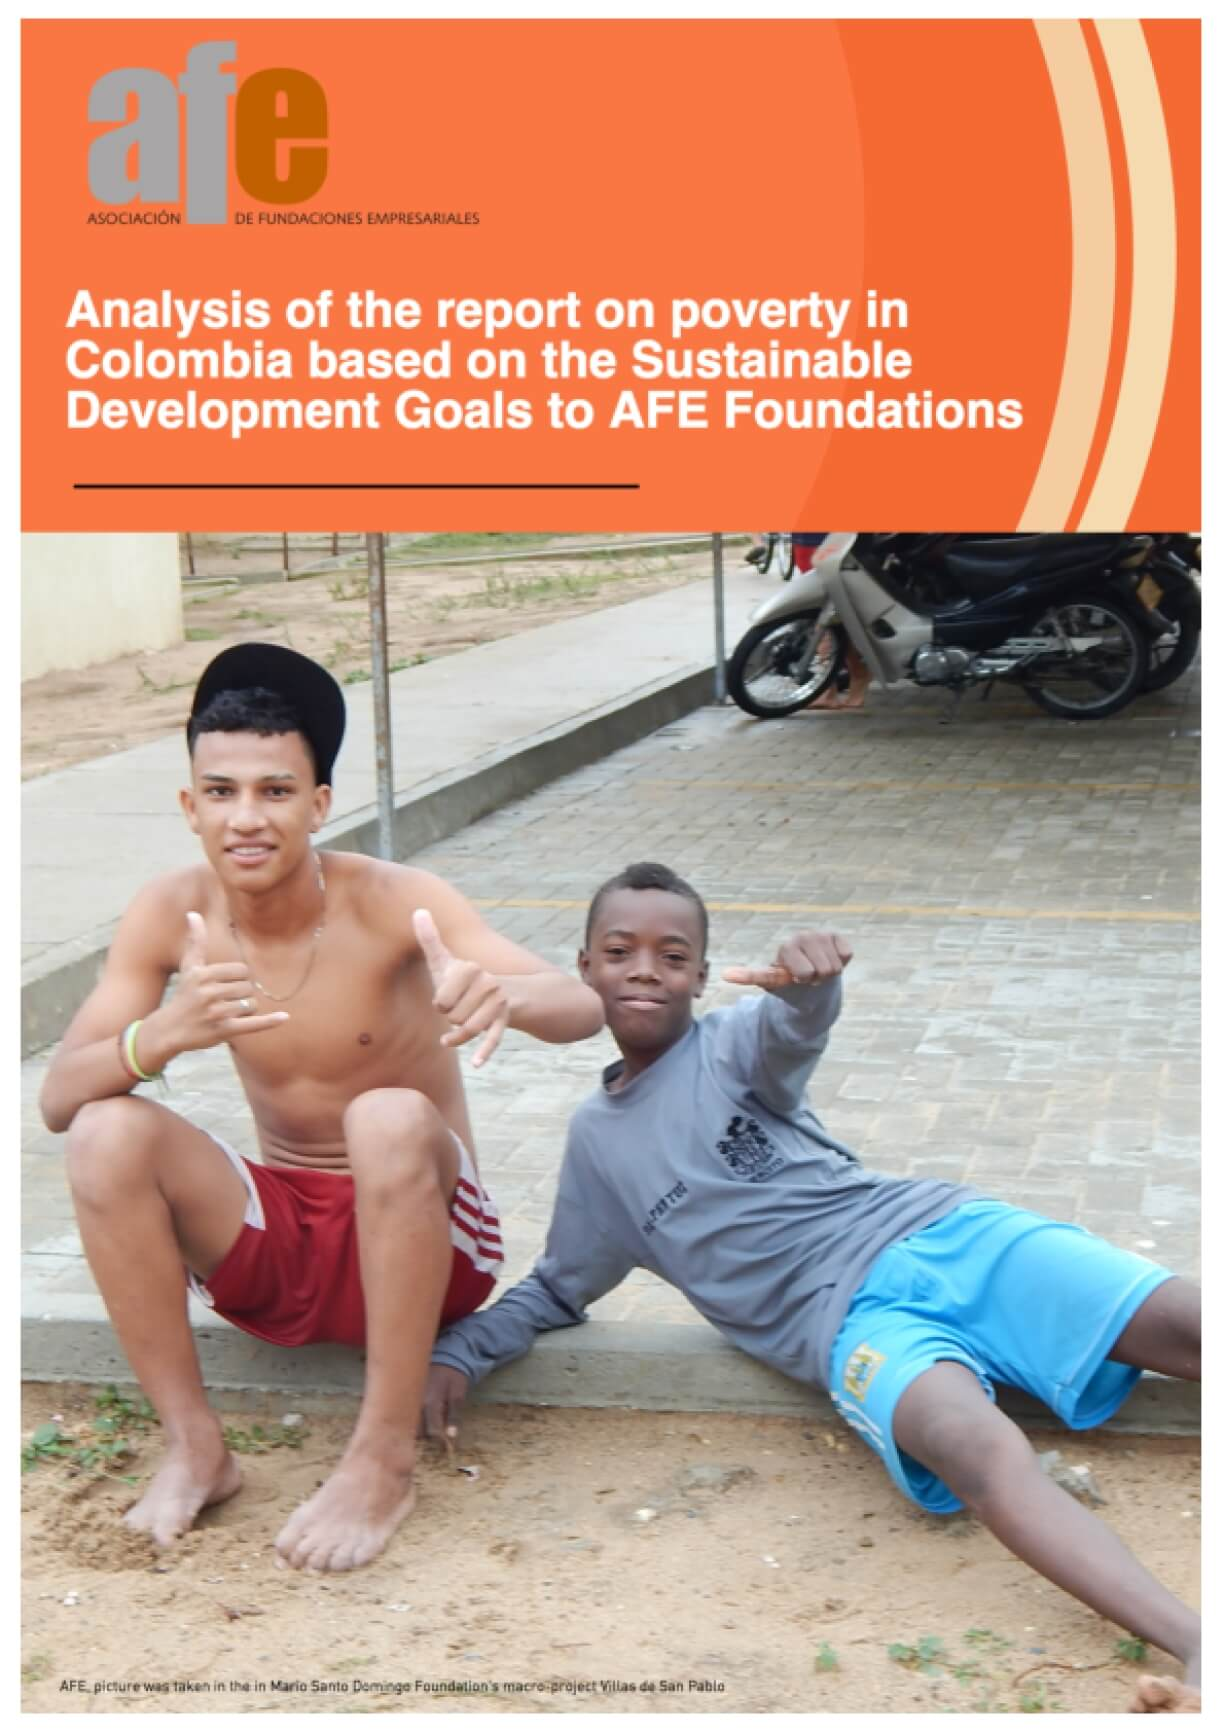 Analysis of the Report on Poverty in Colombia Based on the Sustainable Development Goals to AFE Foundations